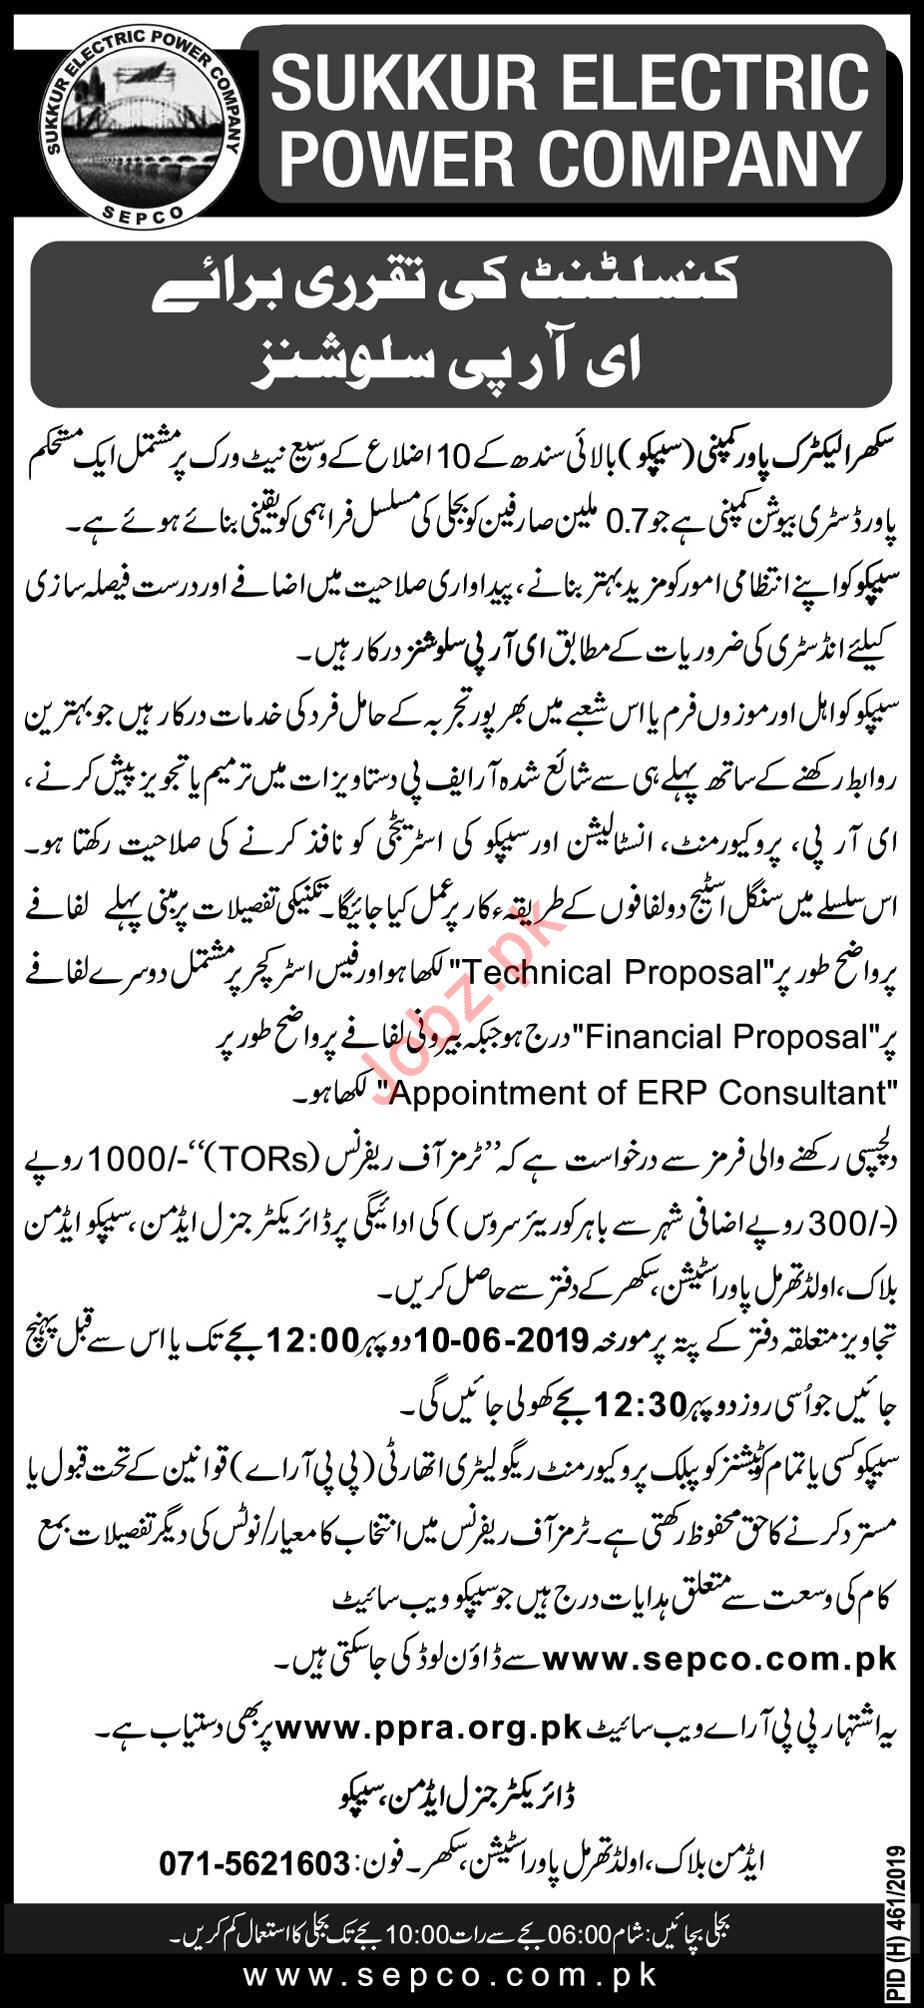 Sukkur Electric Power Company SEPCO Job For Consultant